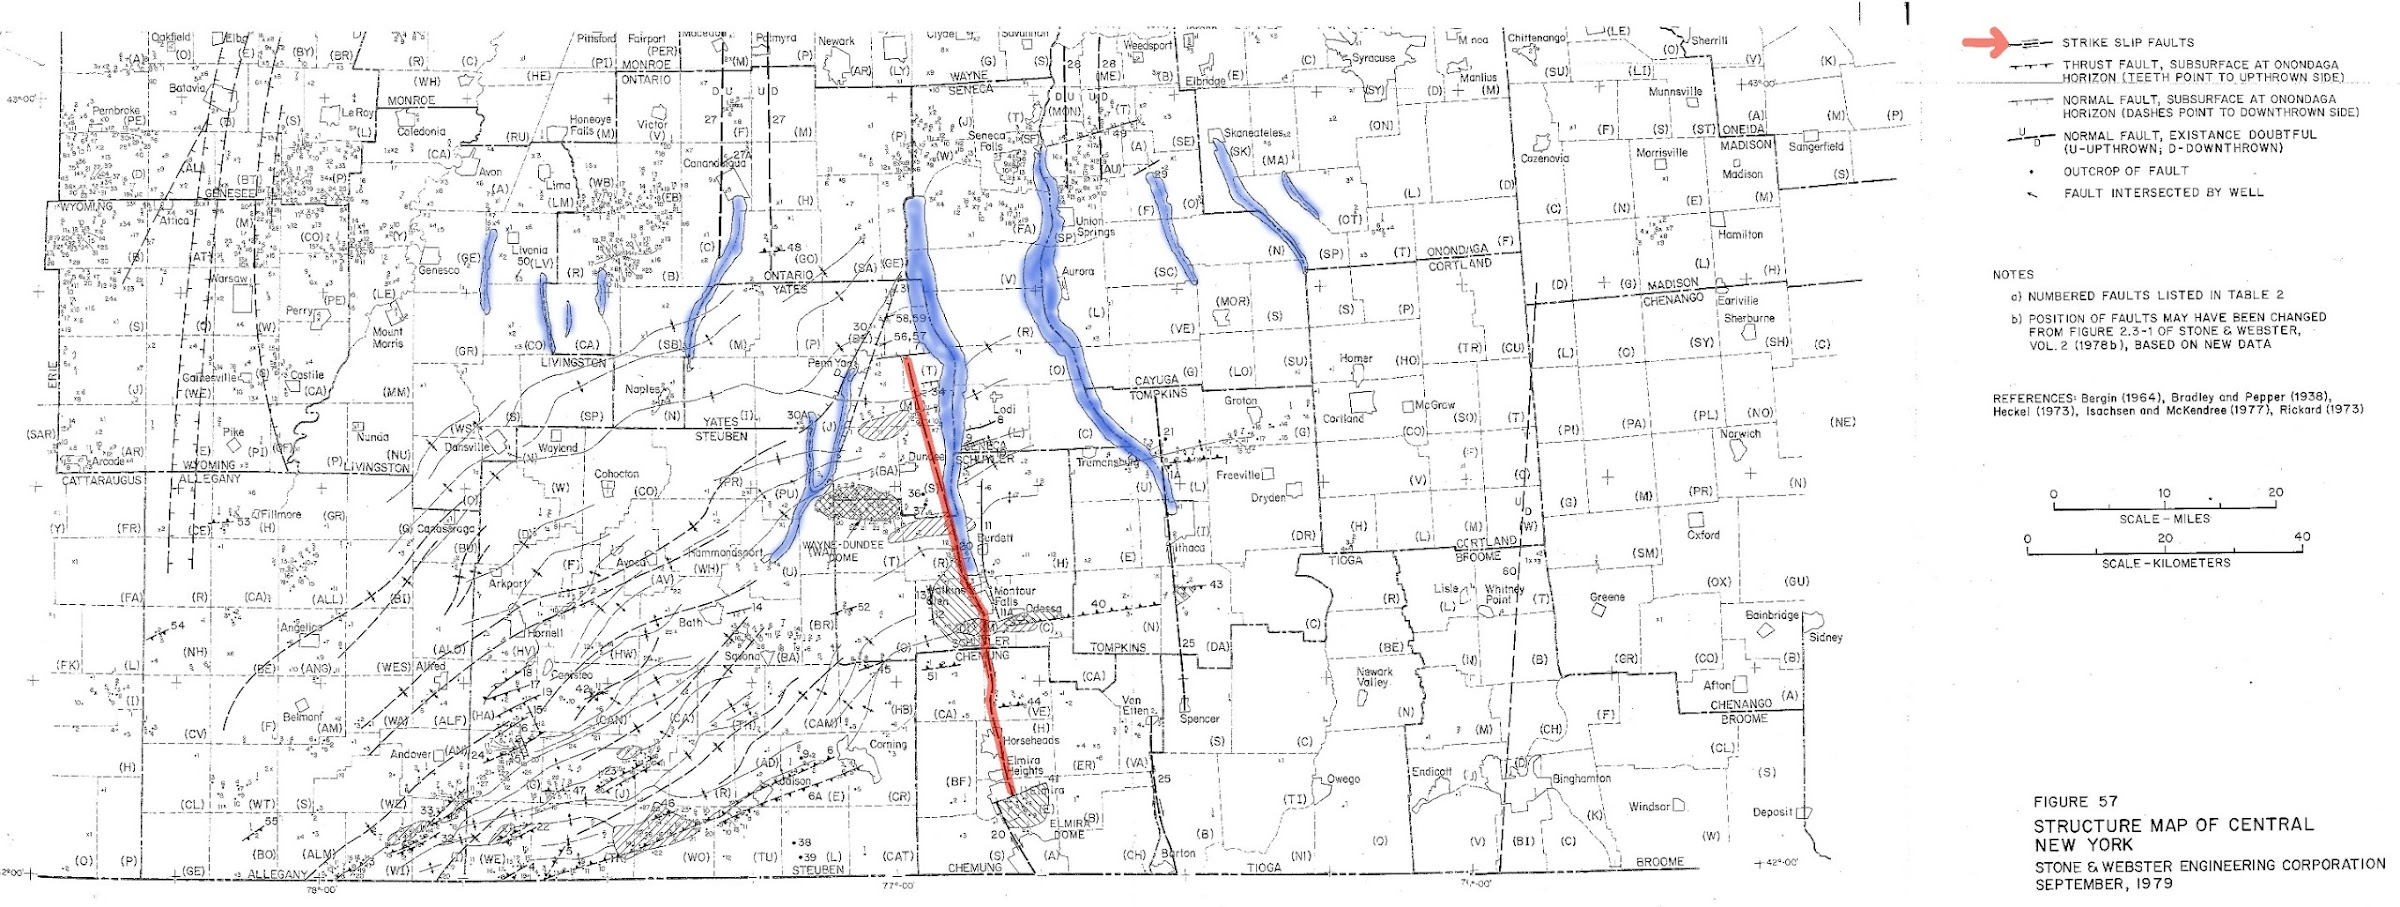 BillHustonBlog: Stone and Webster Fault Map of Finger Lakes Region